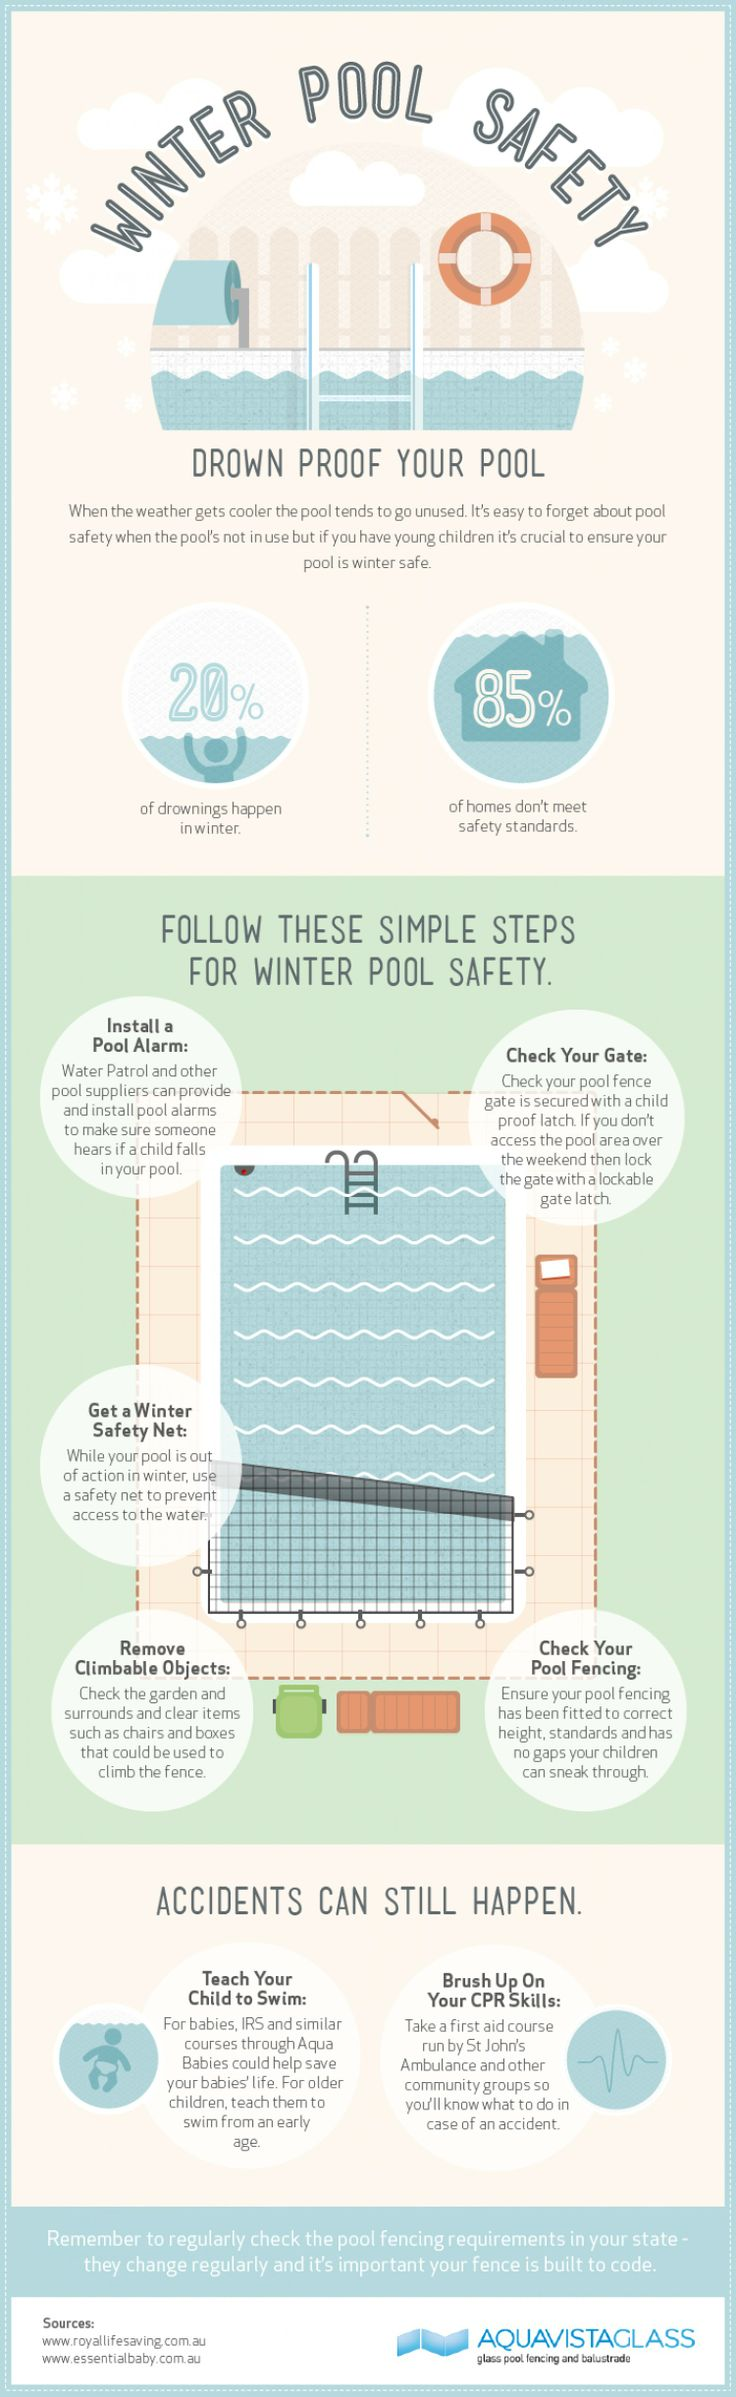 11 best images about safety tips for parents on pinterest coats